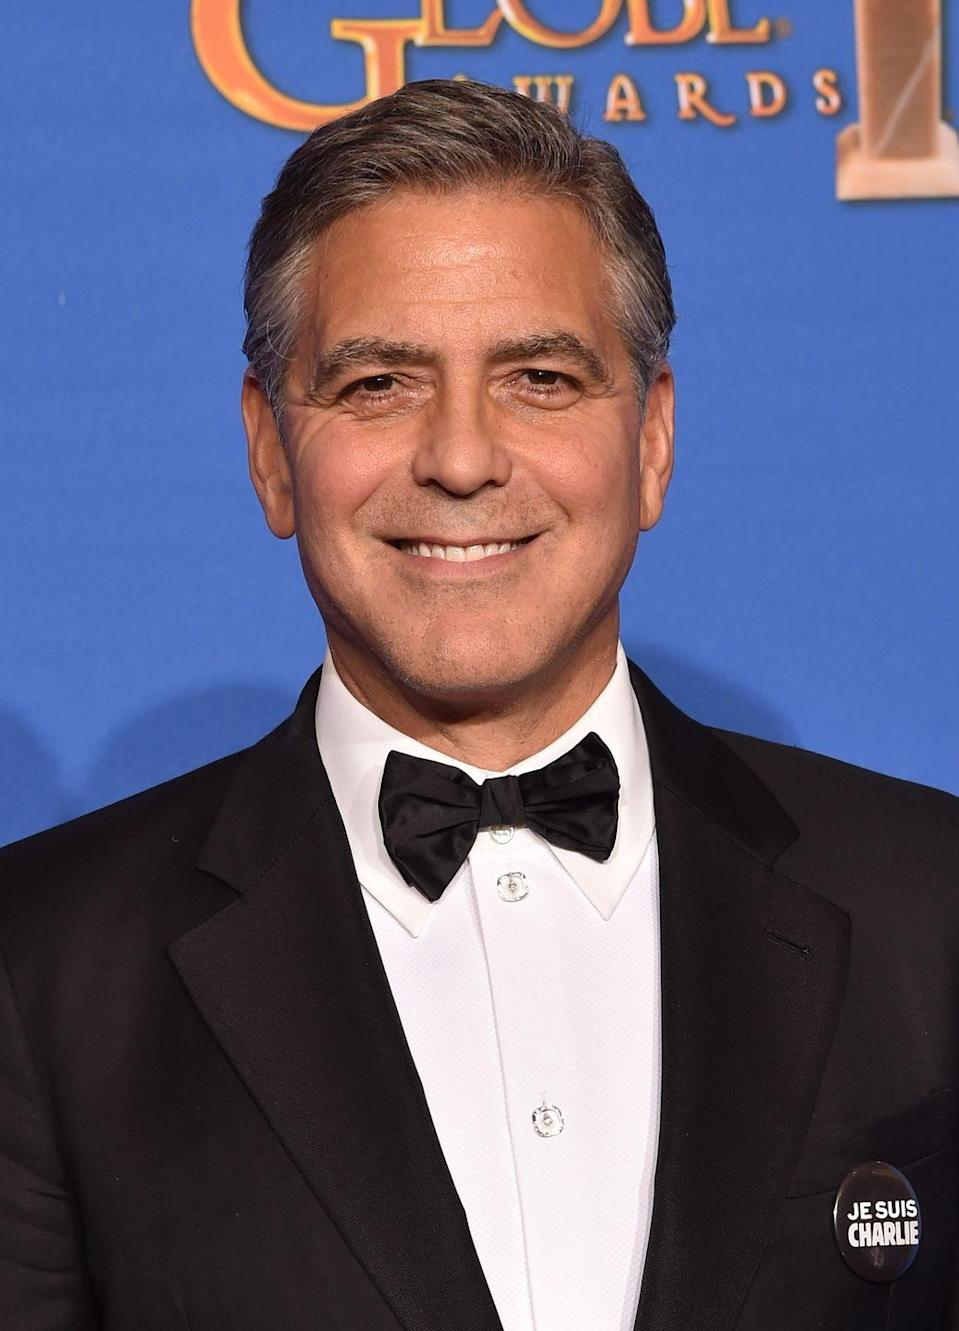 "<p>Okay, so you almost certainly already know what Mr. Clooney has been up to for the past few decades, but there's no harm in a little recap? On top of his numerous big roles in blockbusters like <em>Batman & Robin</em> (1997) and <em>Ocean's Eleven</em> (2001), as well as the much-accoladed <em>The Descendants</em><span class=""redactor-invisible-space""> (2011), he married successful lawyer and activist Amal Alamuddin in 2014.</span></p>"